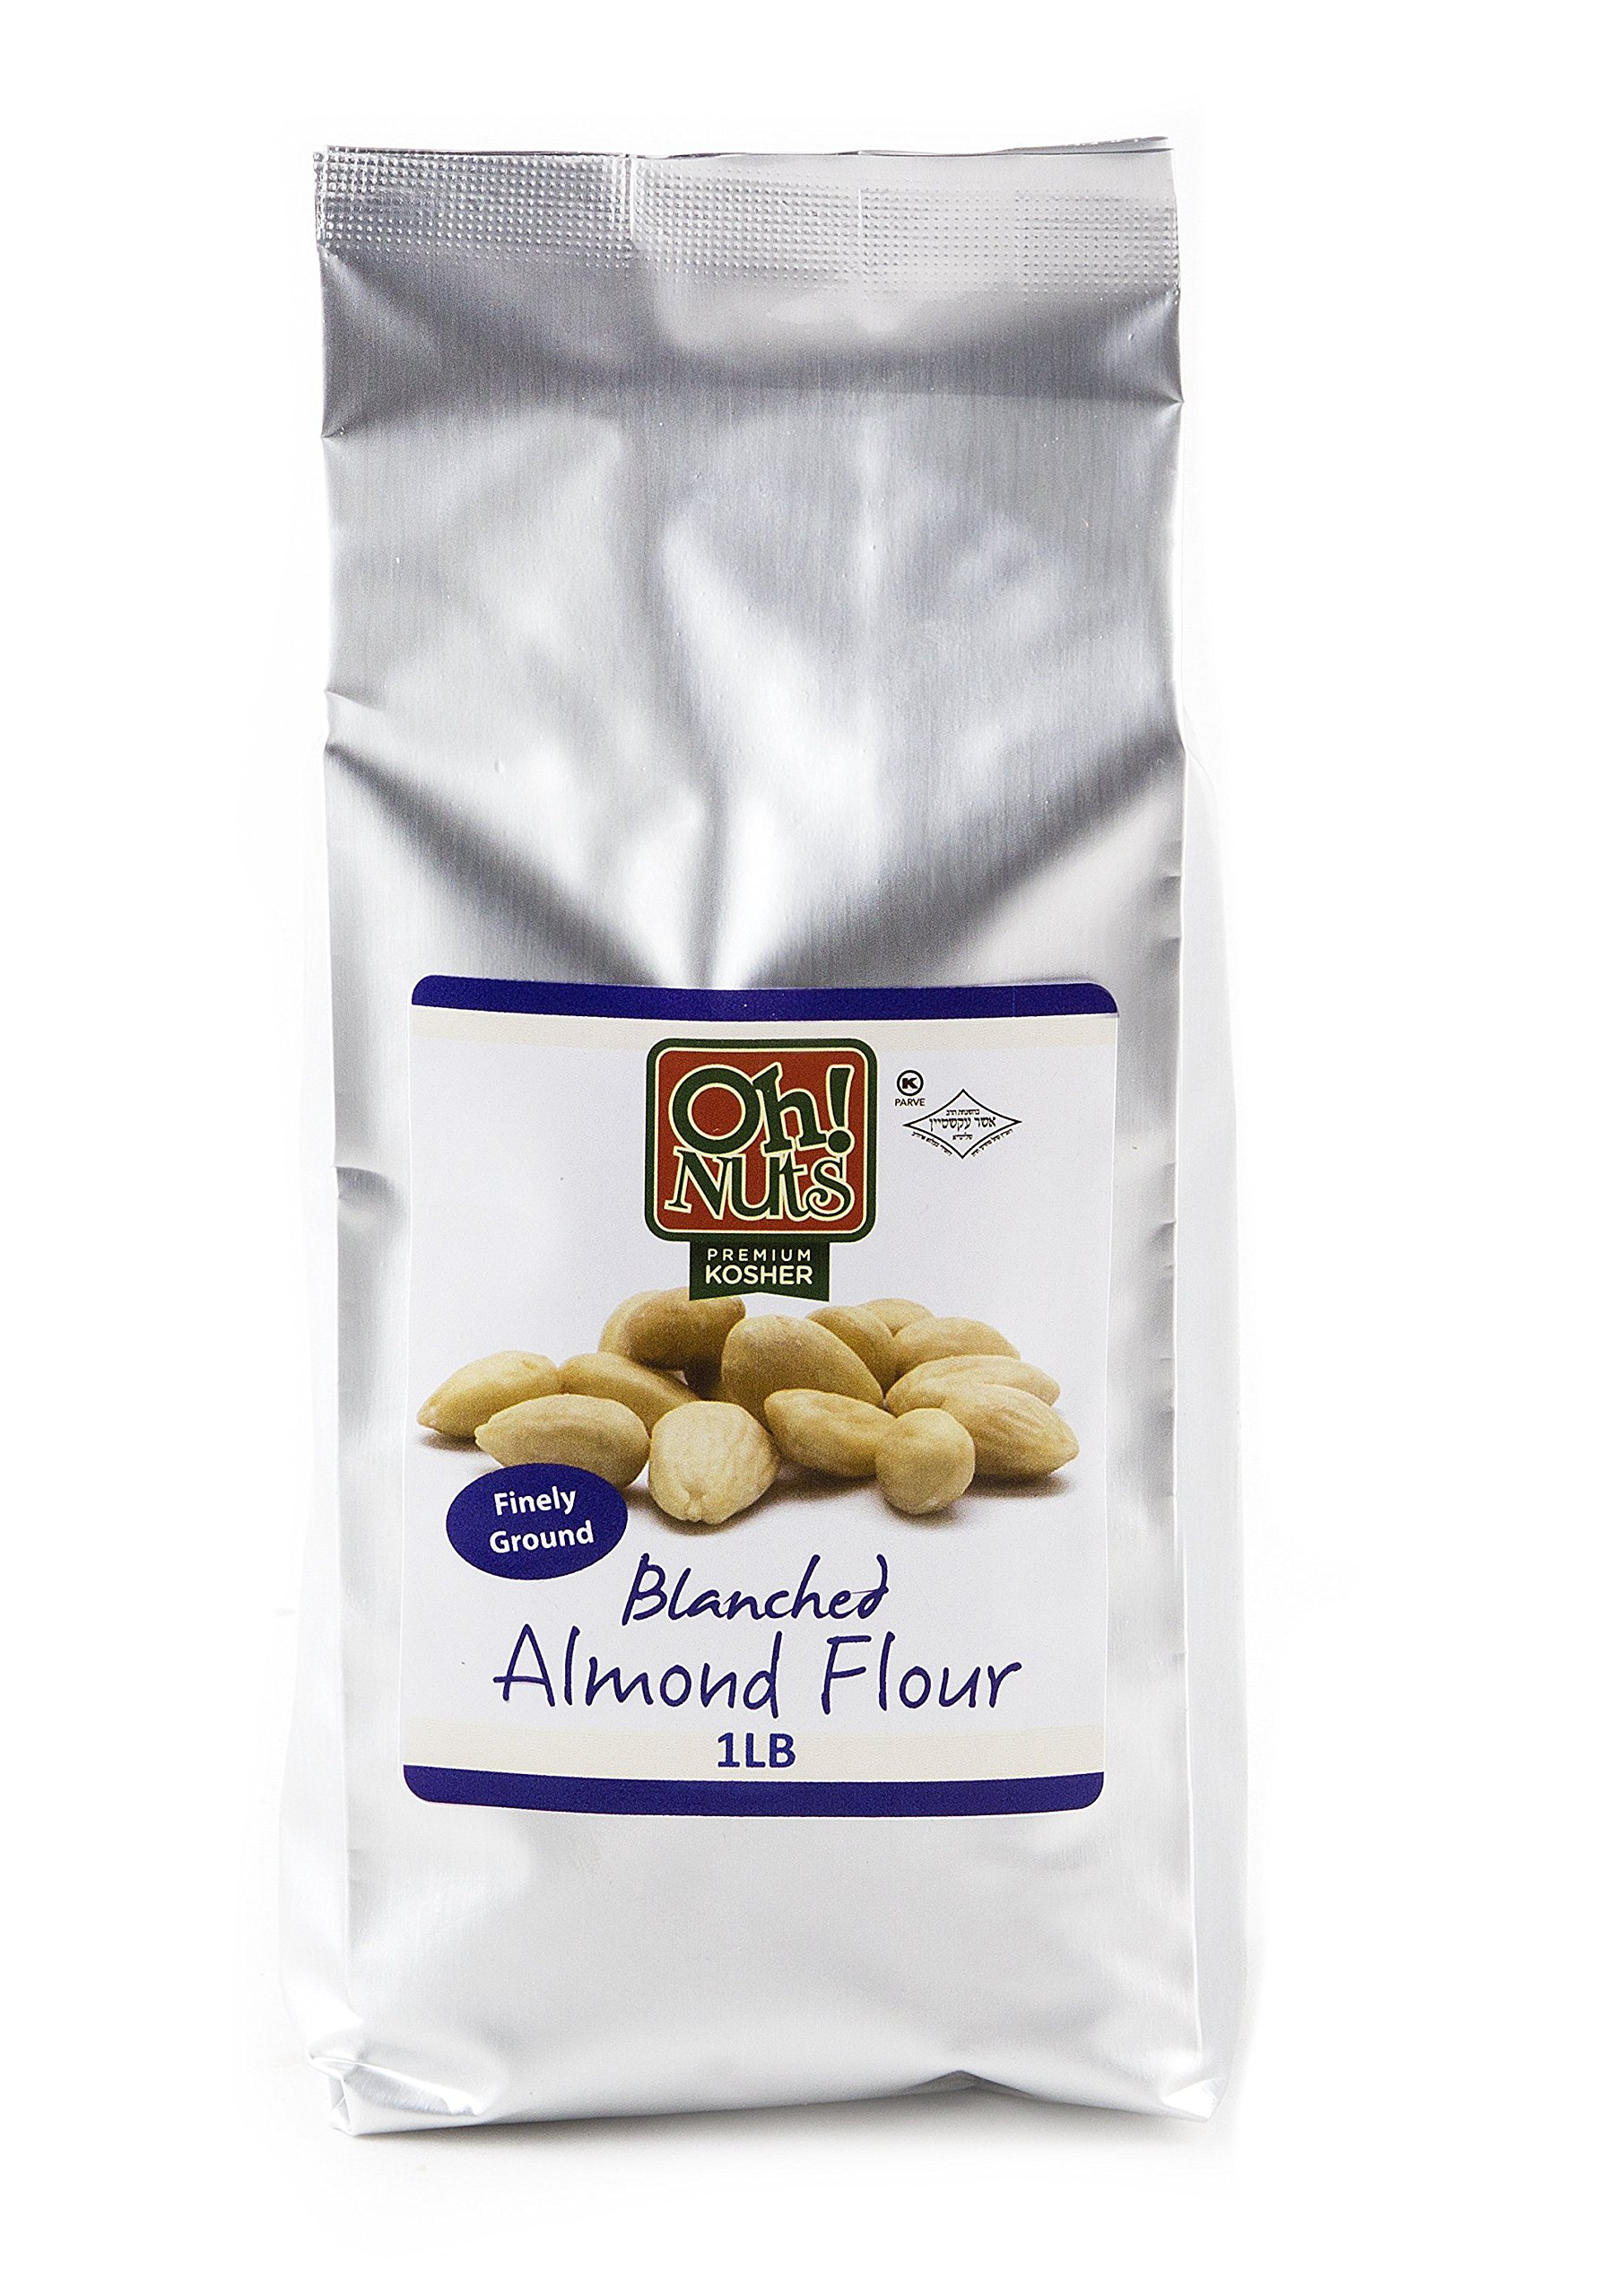 1LB Almond Flour Blanched All Natural, Extra Fine Ground Almond Meal - Oh! Nuts (1 LB Bag Blanched Almond Flour) by Oh! Nuts®